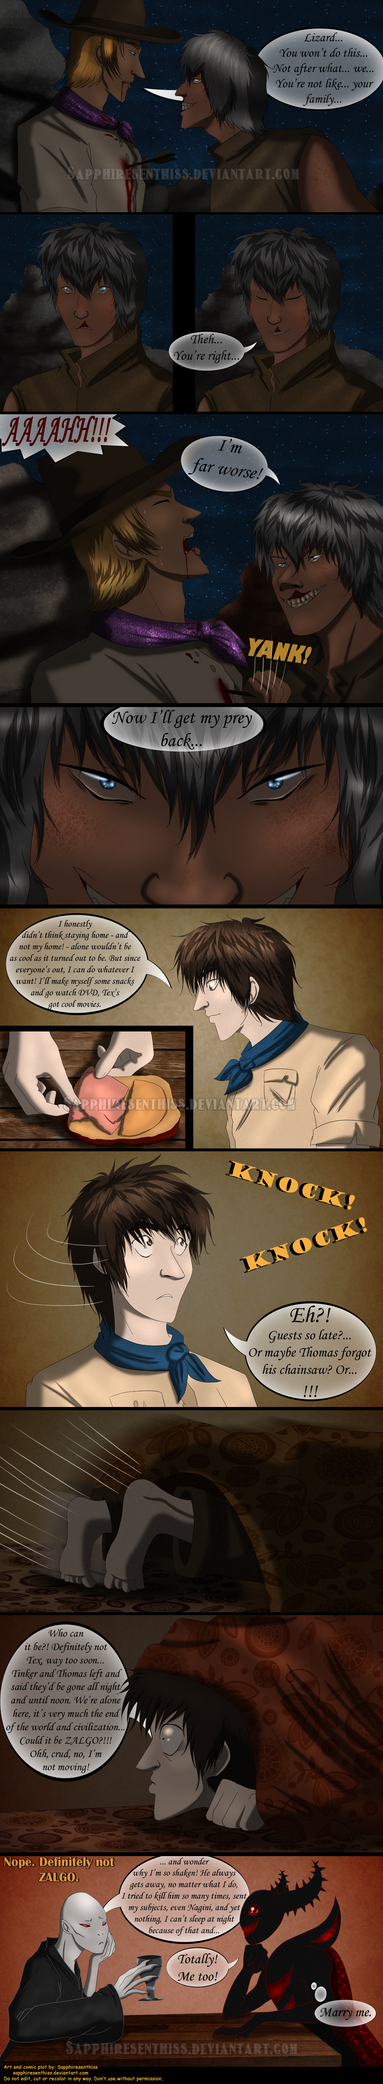 Adventures With Jeff The Killer - PAGE 232 by Sapphiresenthiss